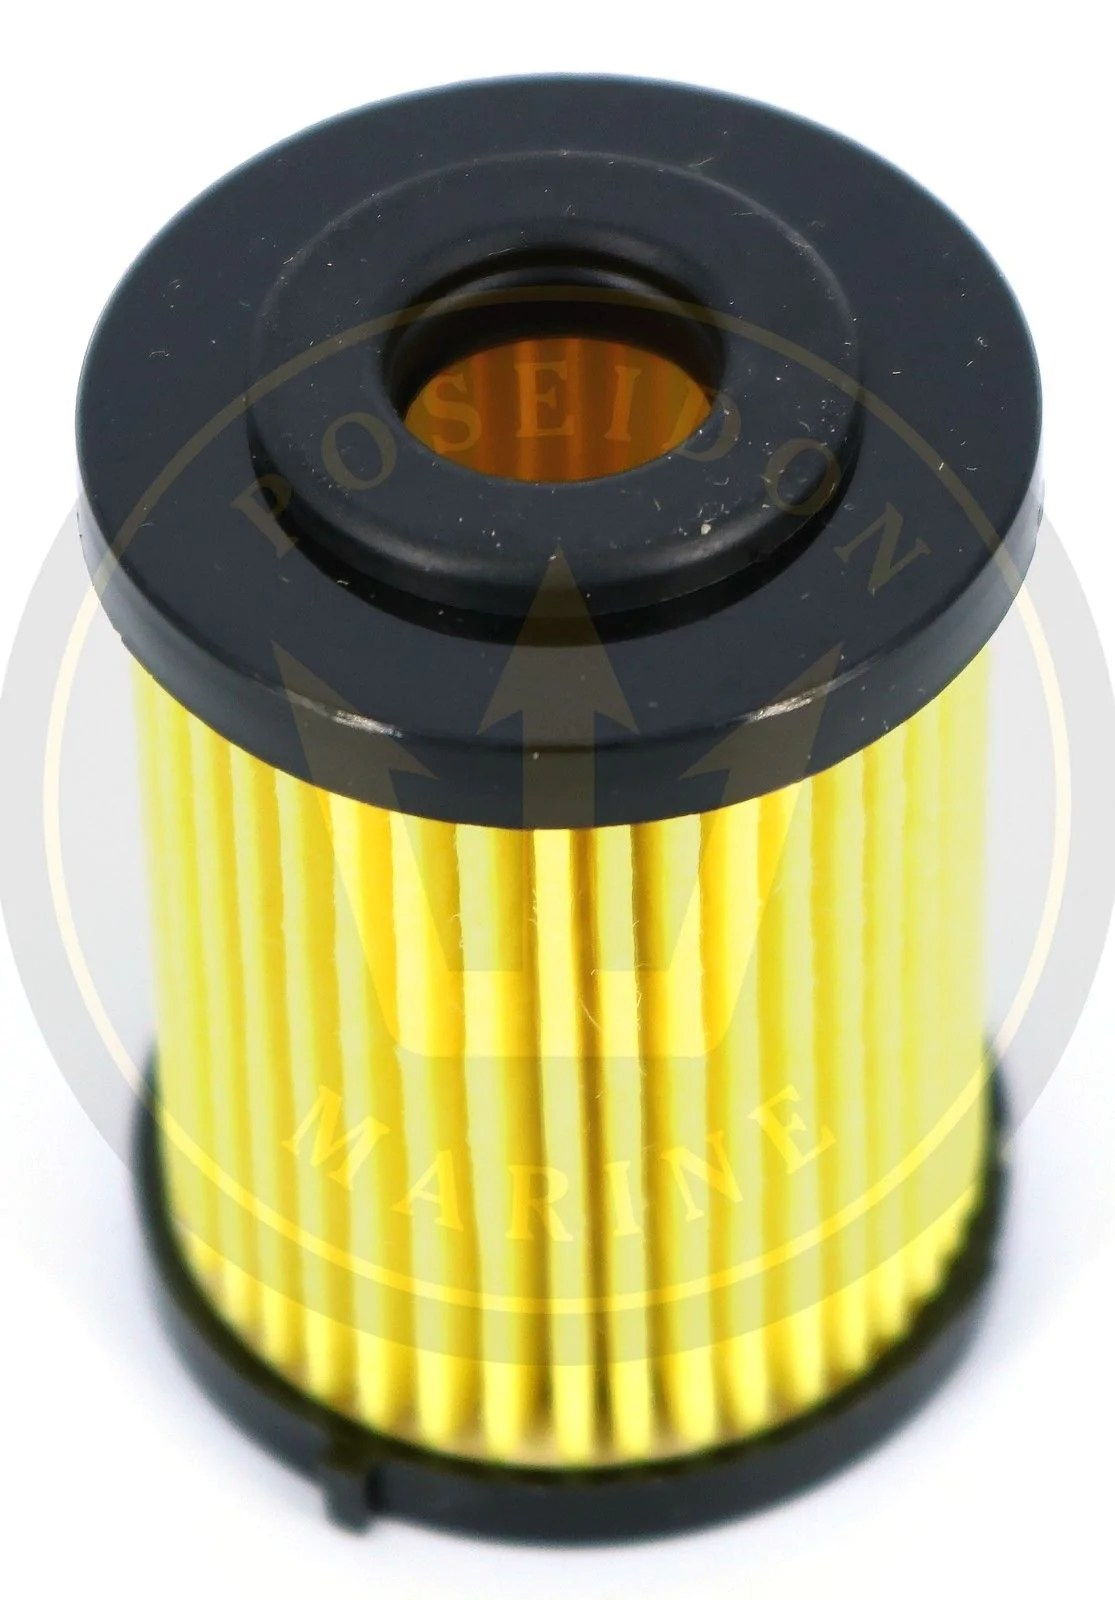 small resolution of  fuel filter element for yamaha 6p3 ws24a 00 150 200 225 250 300hp outboard